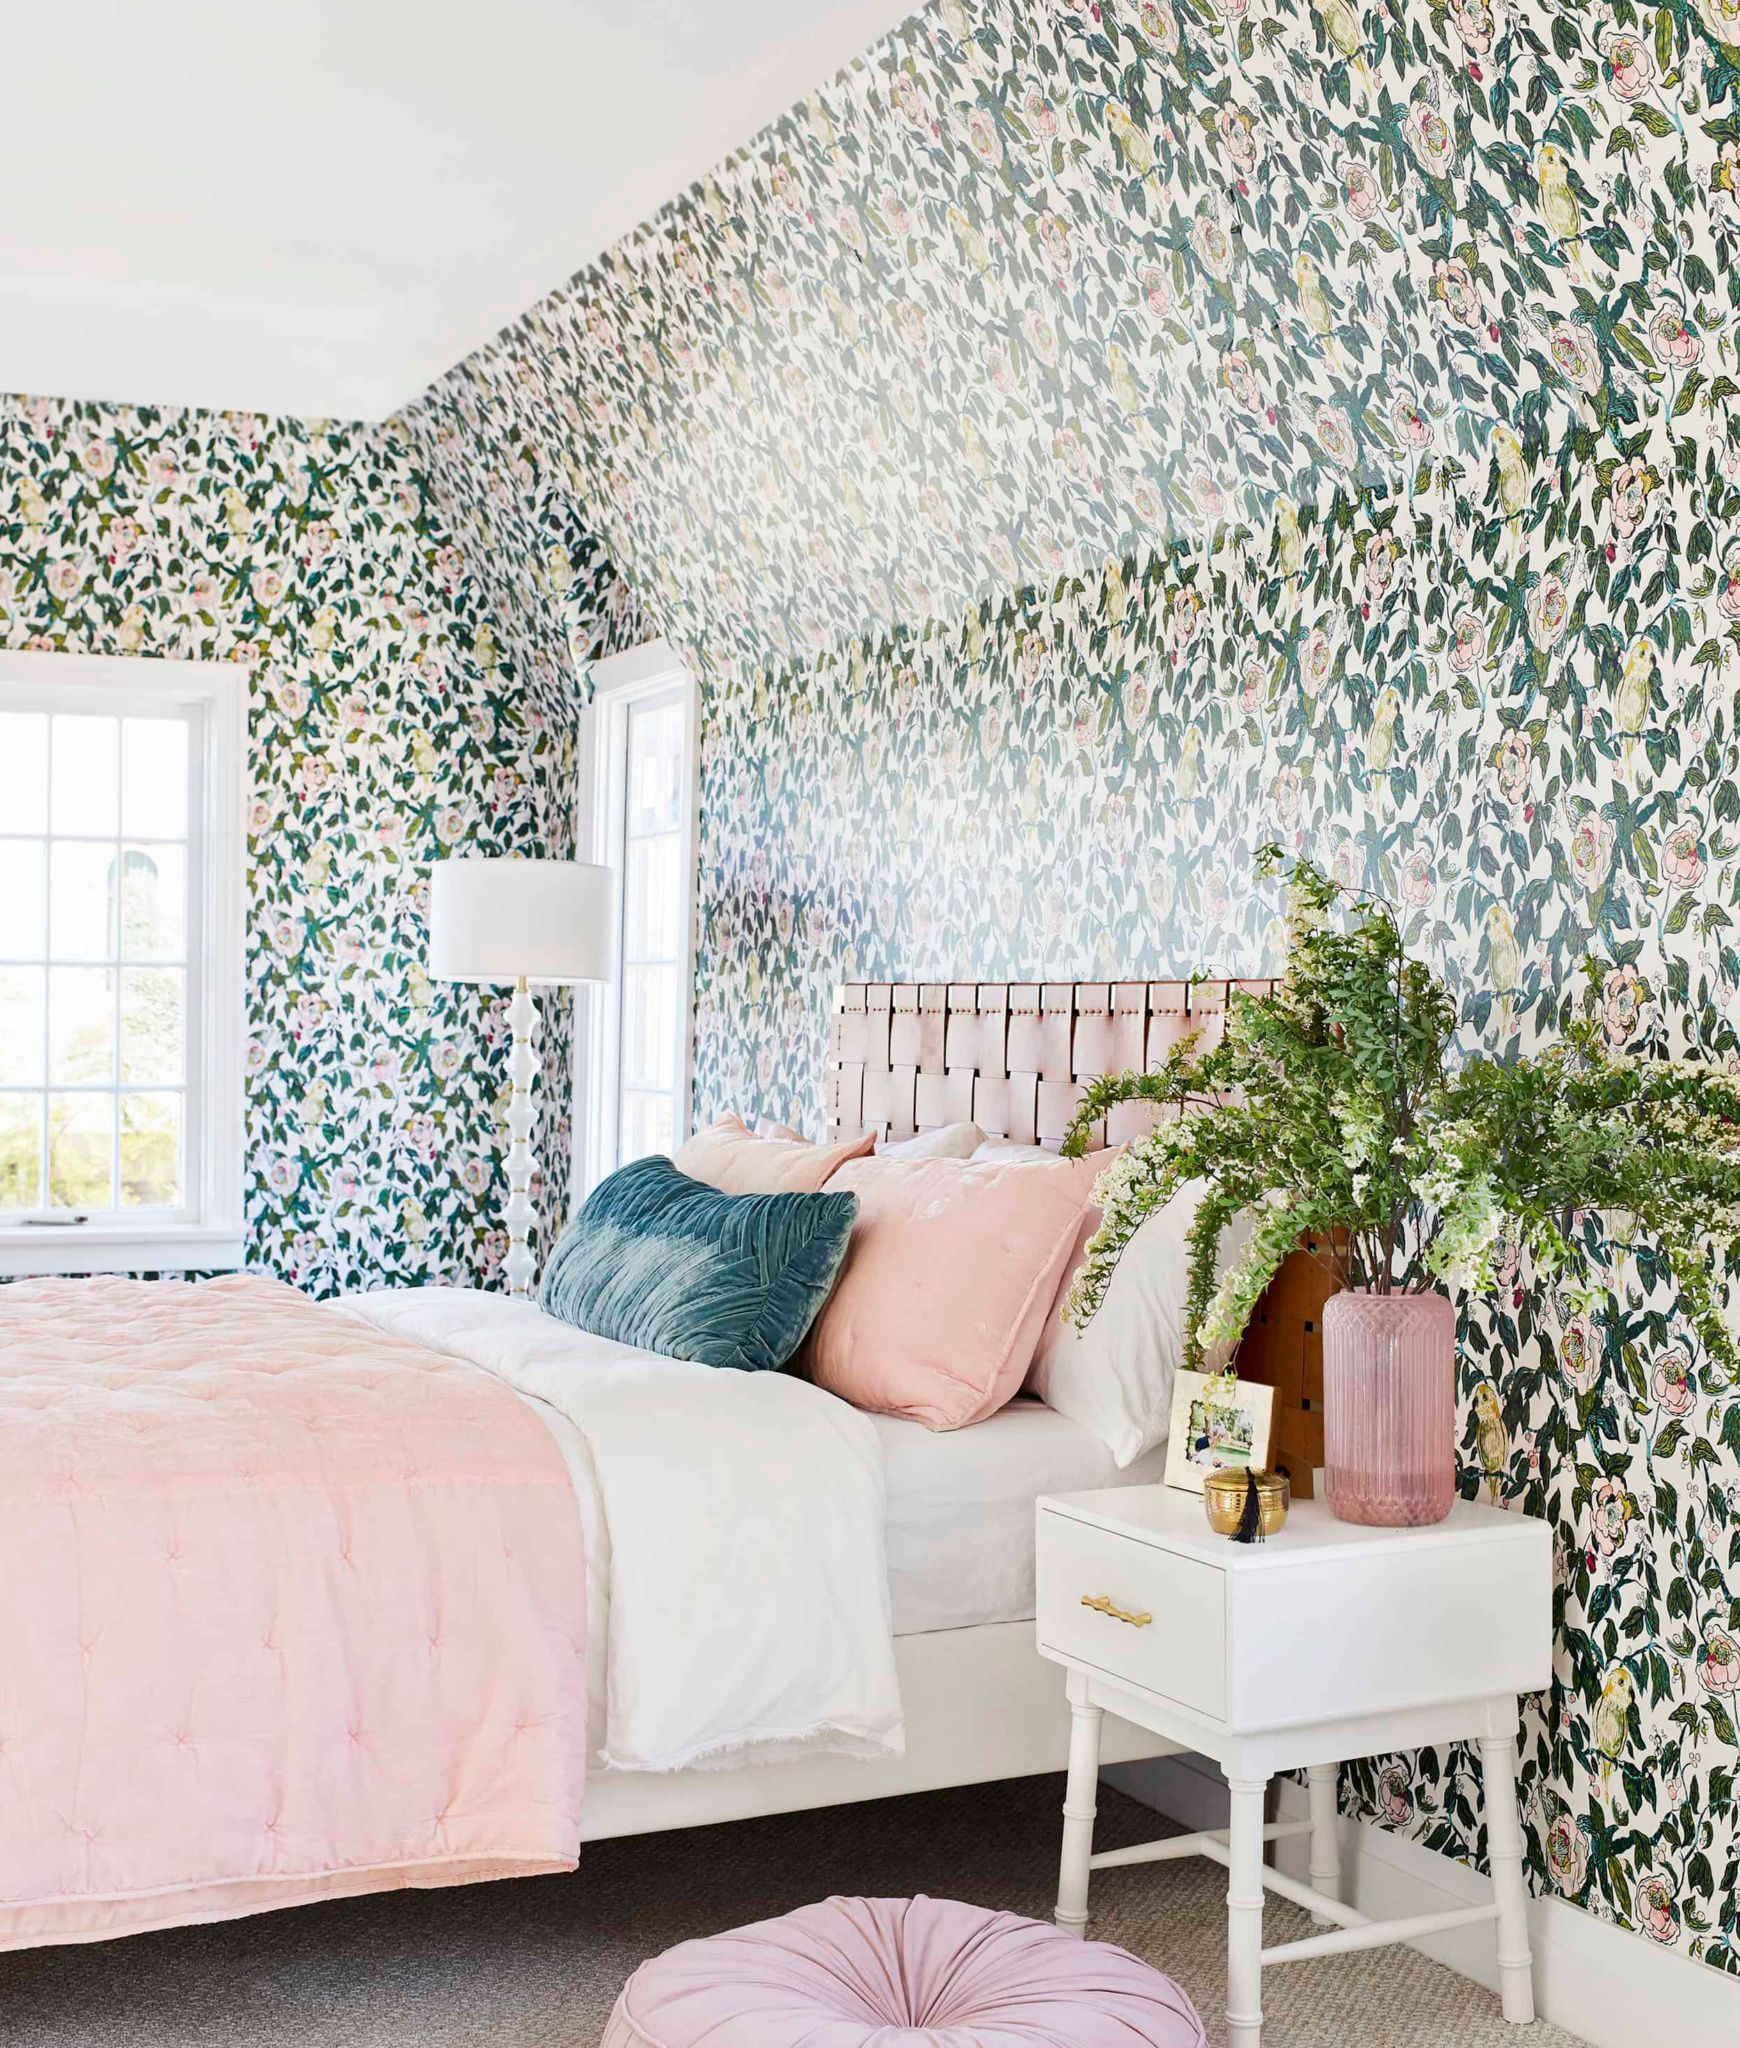 The Best Peel And Stick Wallpapers For Your Rental Apartment Or Really Any Space Help Mallory Choose One For Her Bathroom Emily Henderson Wallpaper Bedroom Vintage Apartment Decor Bedroom Makeover